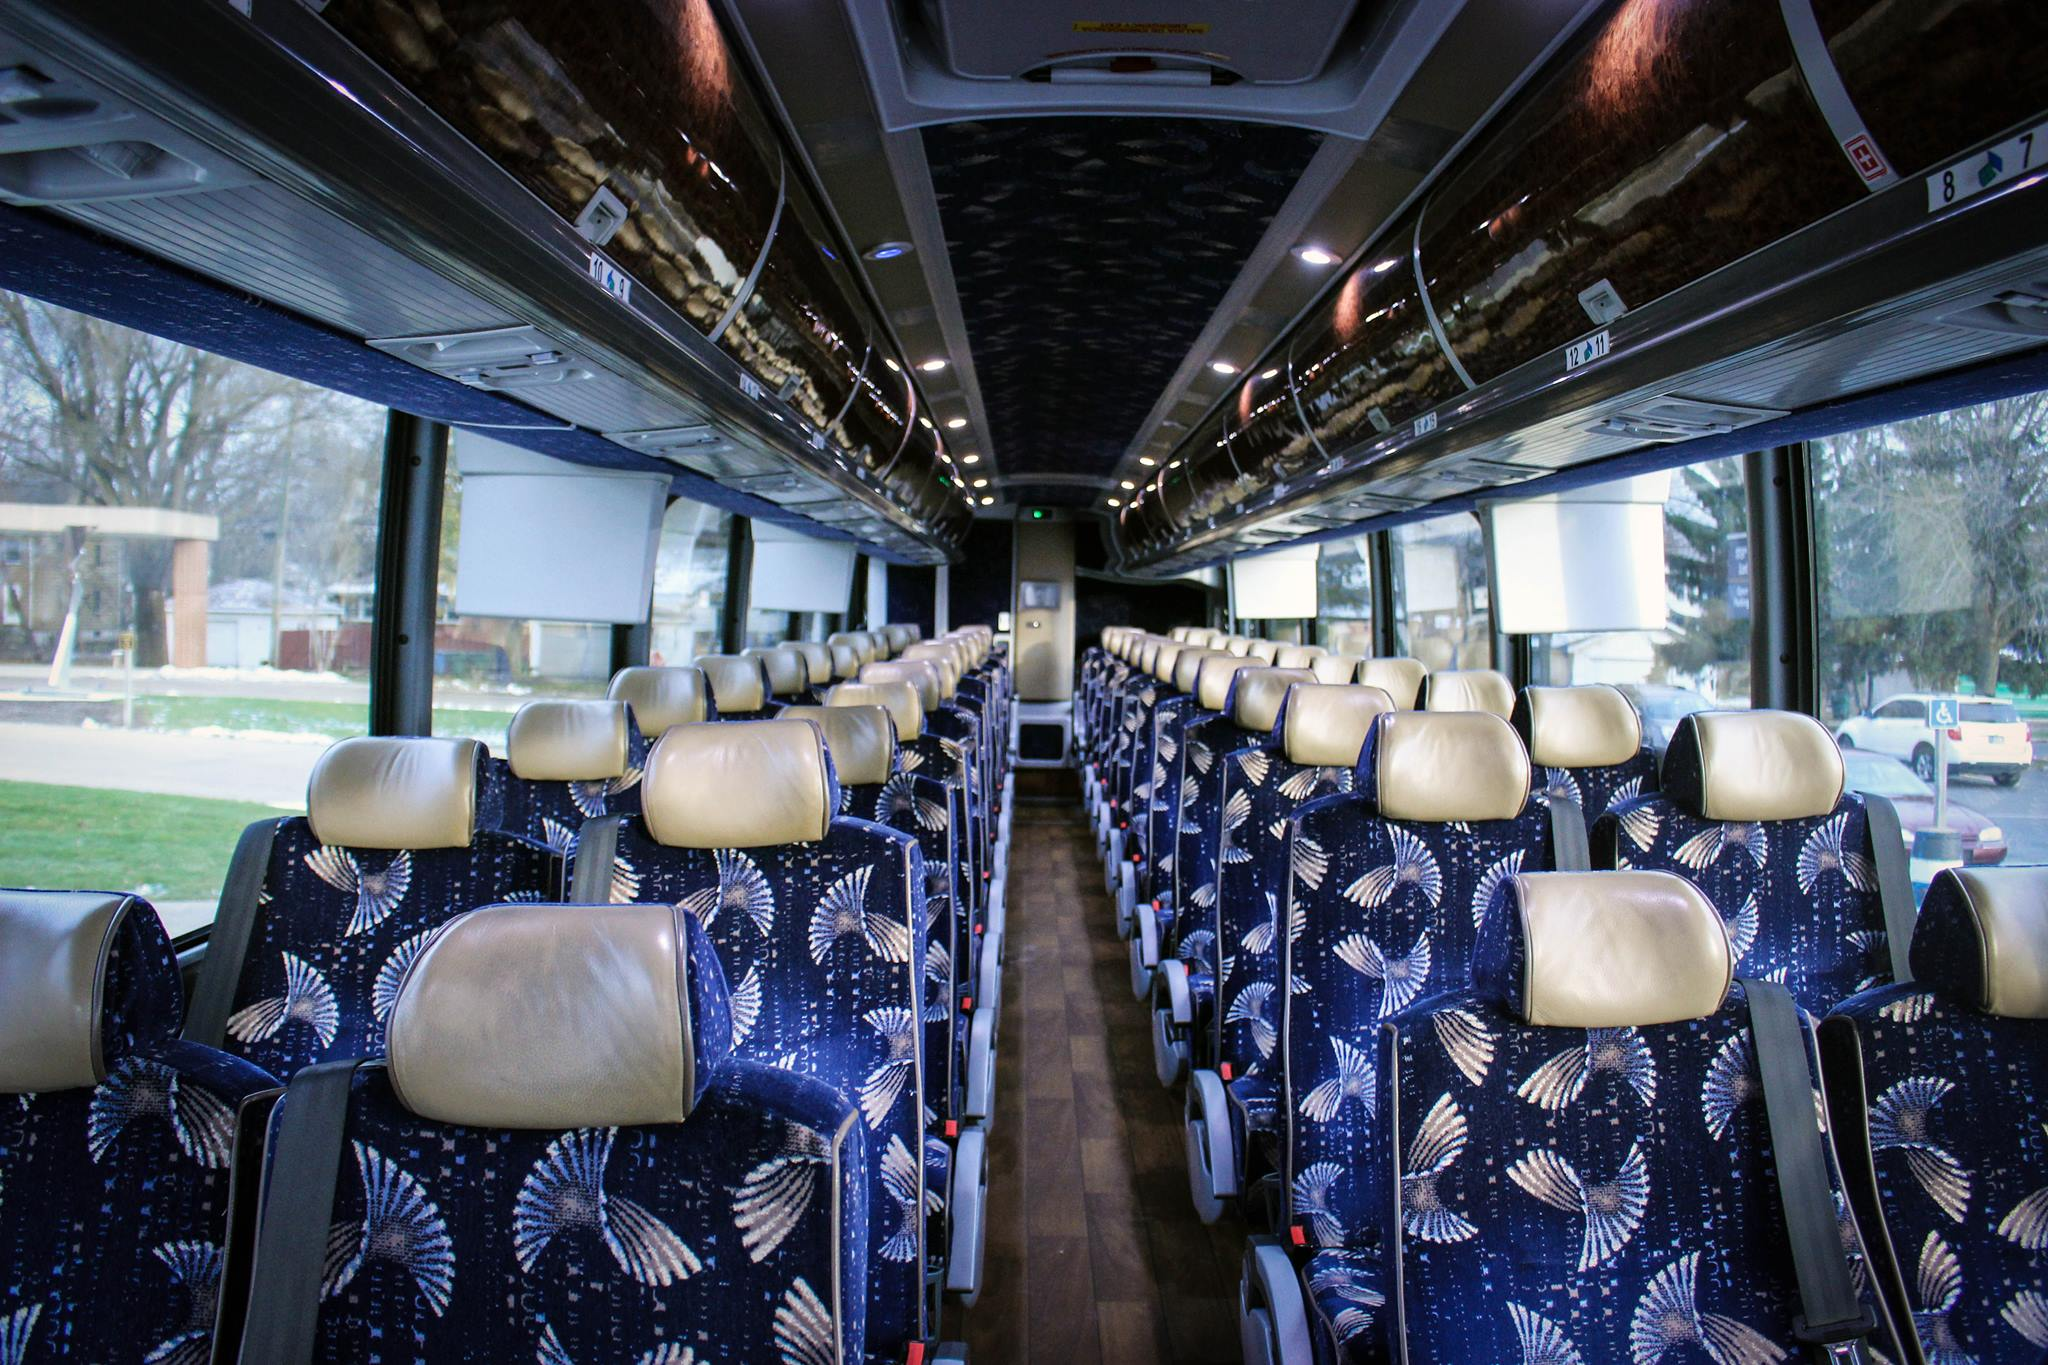 The buses for bringing students and faculty members between campuses have hardwood floors, footrests, televisions, a restroom, overhead storage and adjustable lighting.